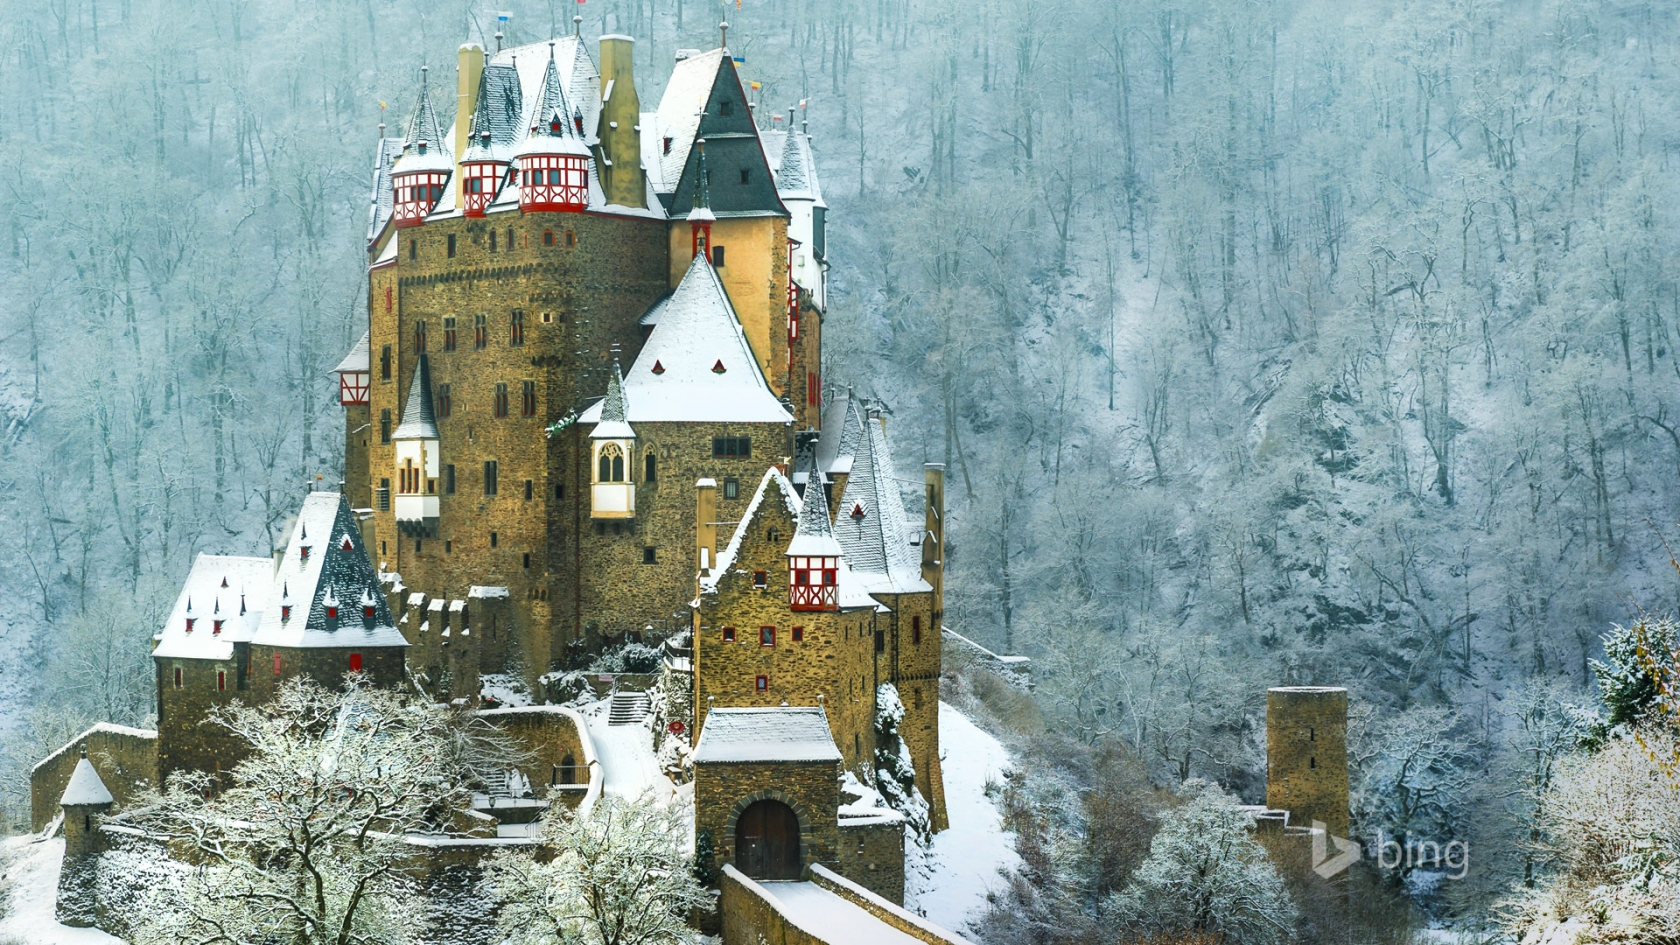 Burg Eltz Castle Germany for 1680 x 945 HDTV resolution